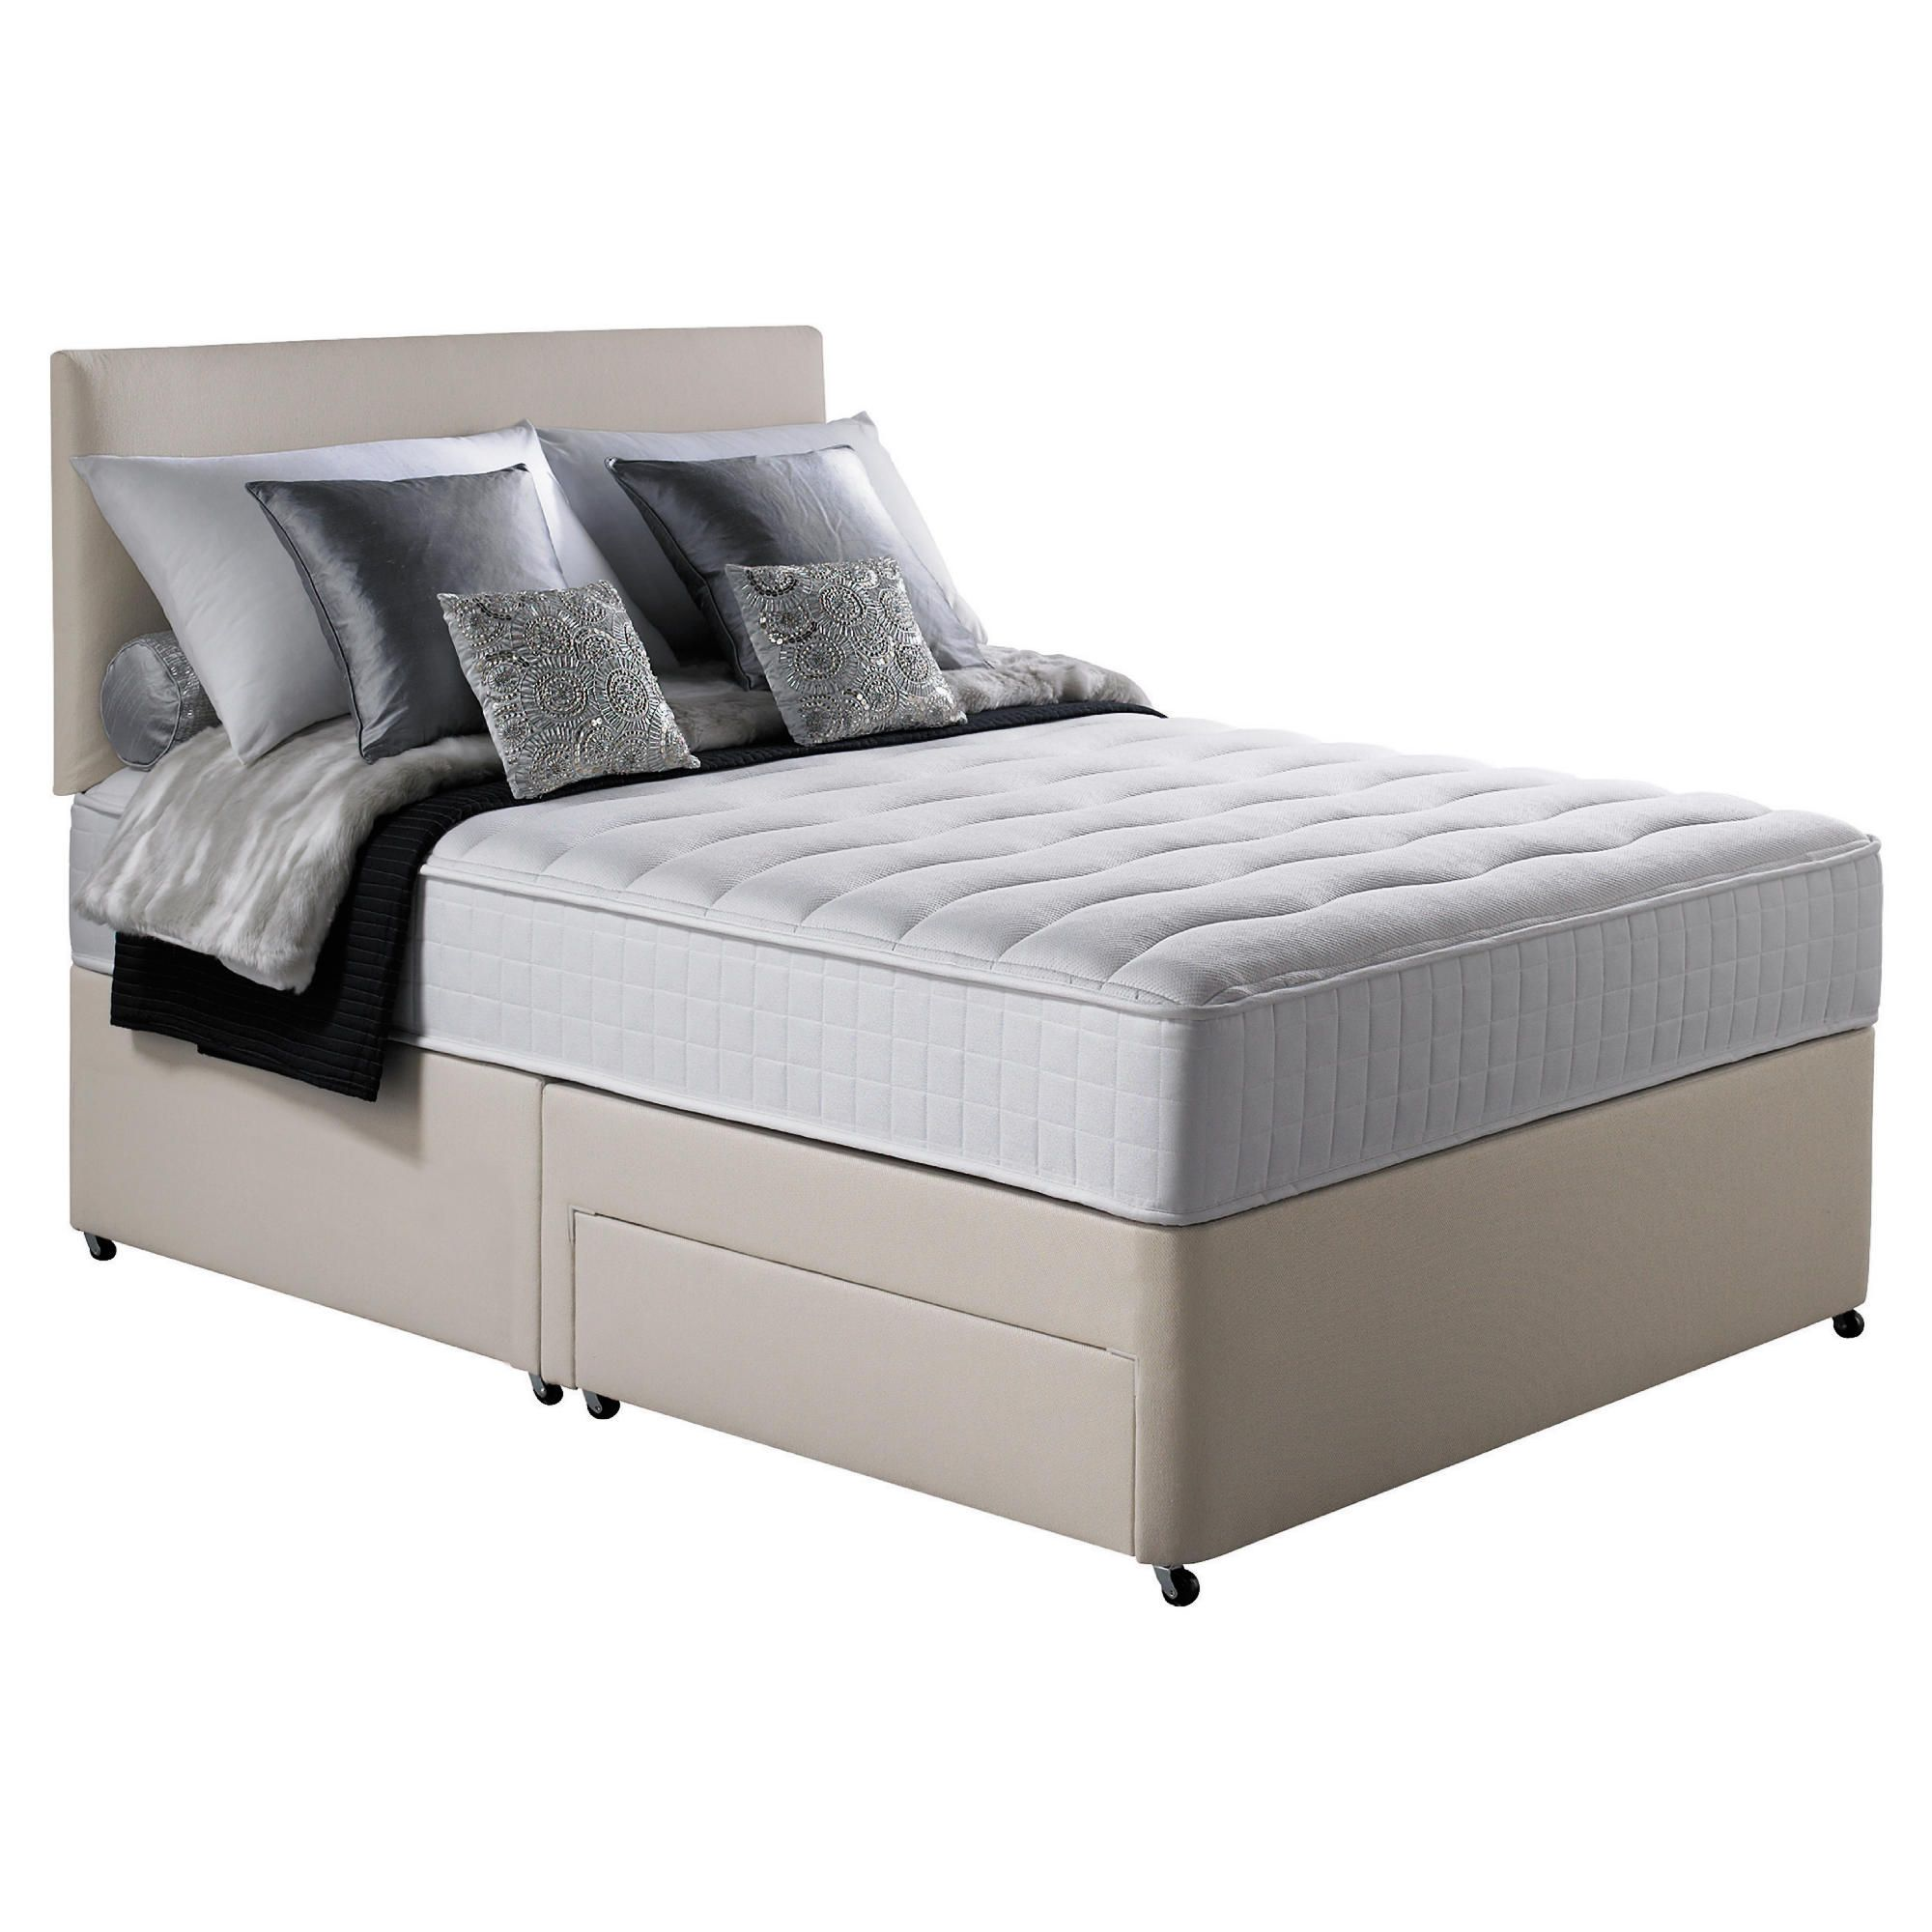 Silentnight Pocket Essentials Memory Foam King 2 Drawer Divan Bed. at Tescos Direct